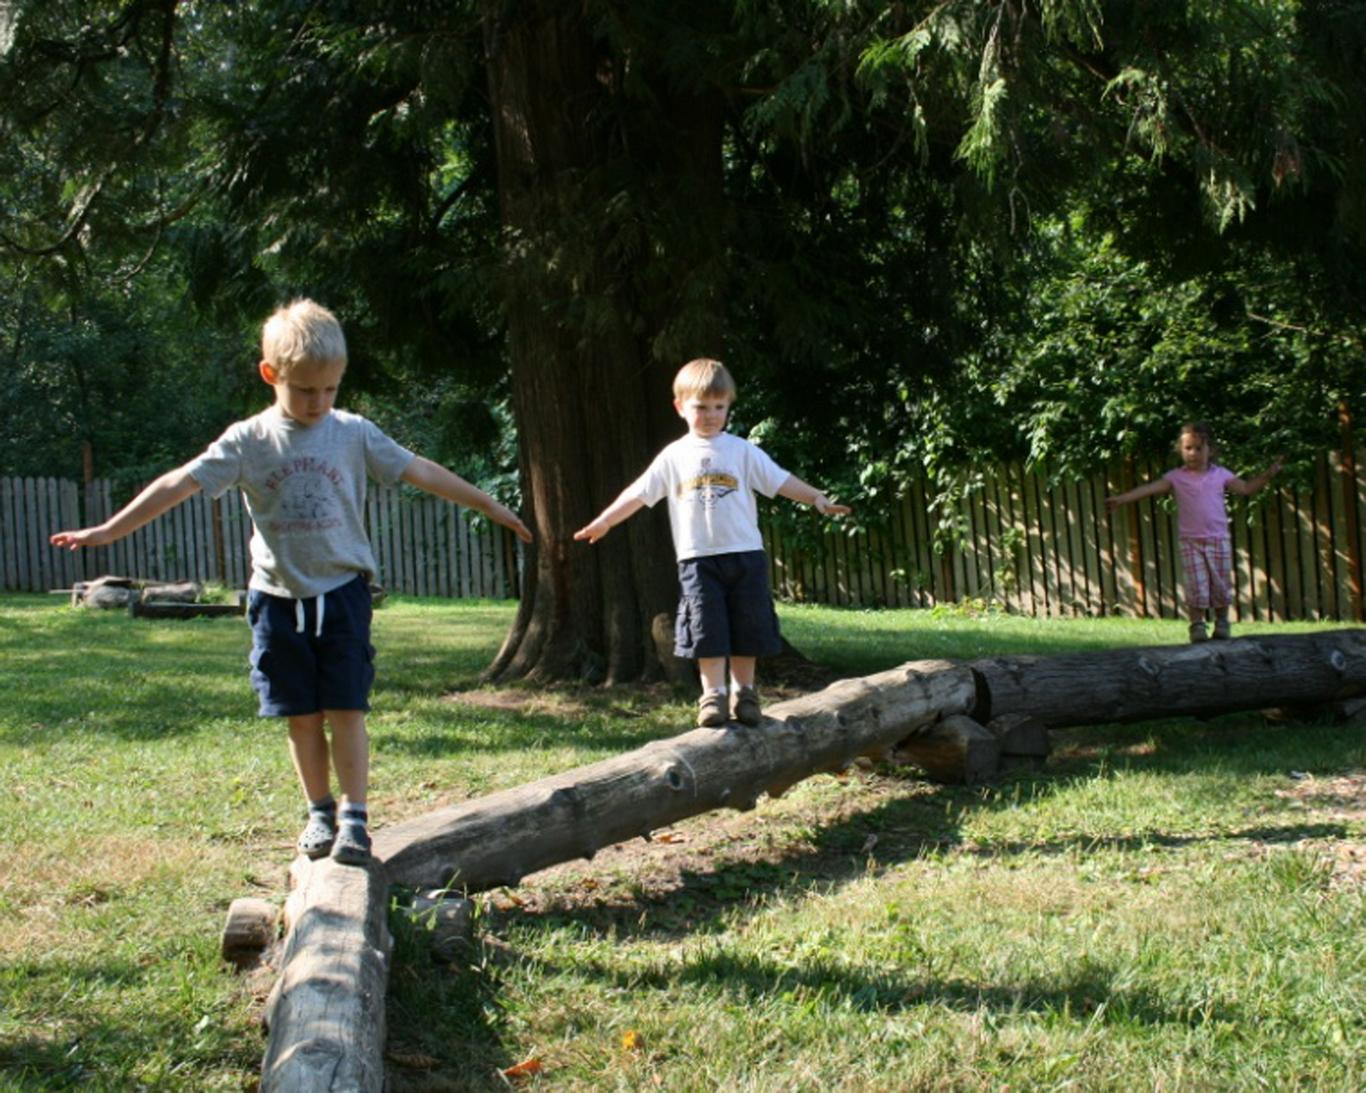 Children take a walk on a balance beam tree in the nature-filled backyard